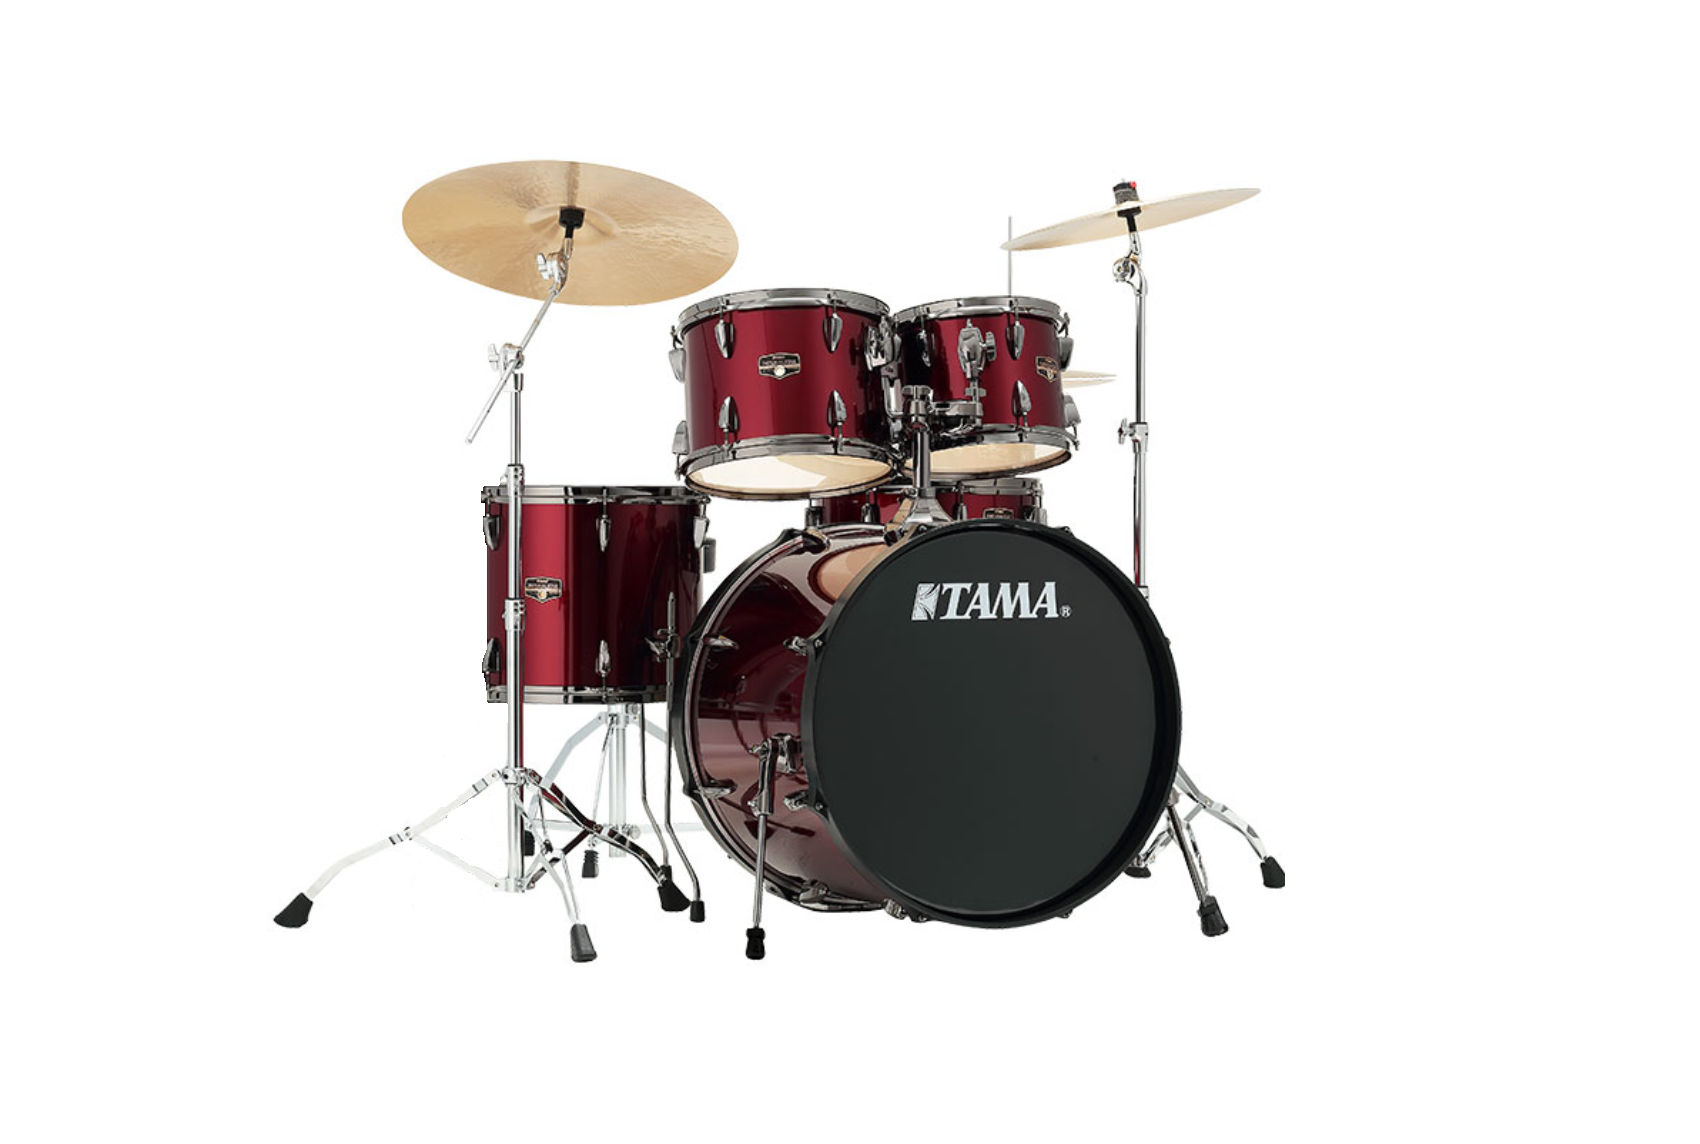 Tama Imperialstar Drum Kit With Stands And Cymbals Vintage Red